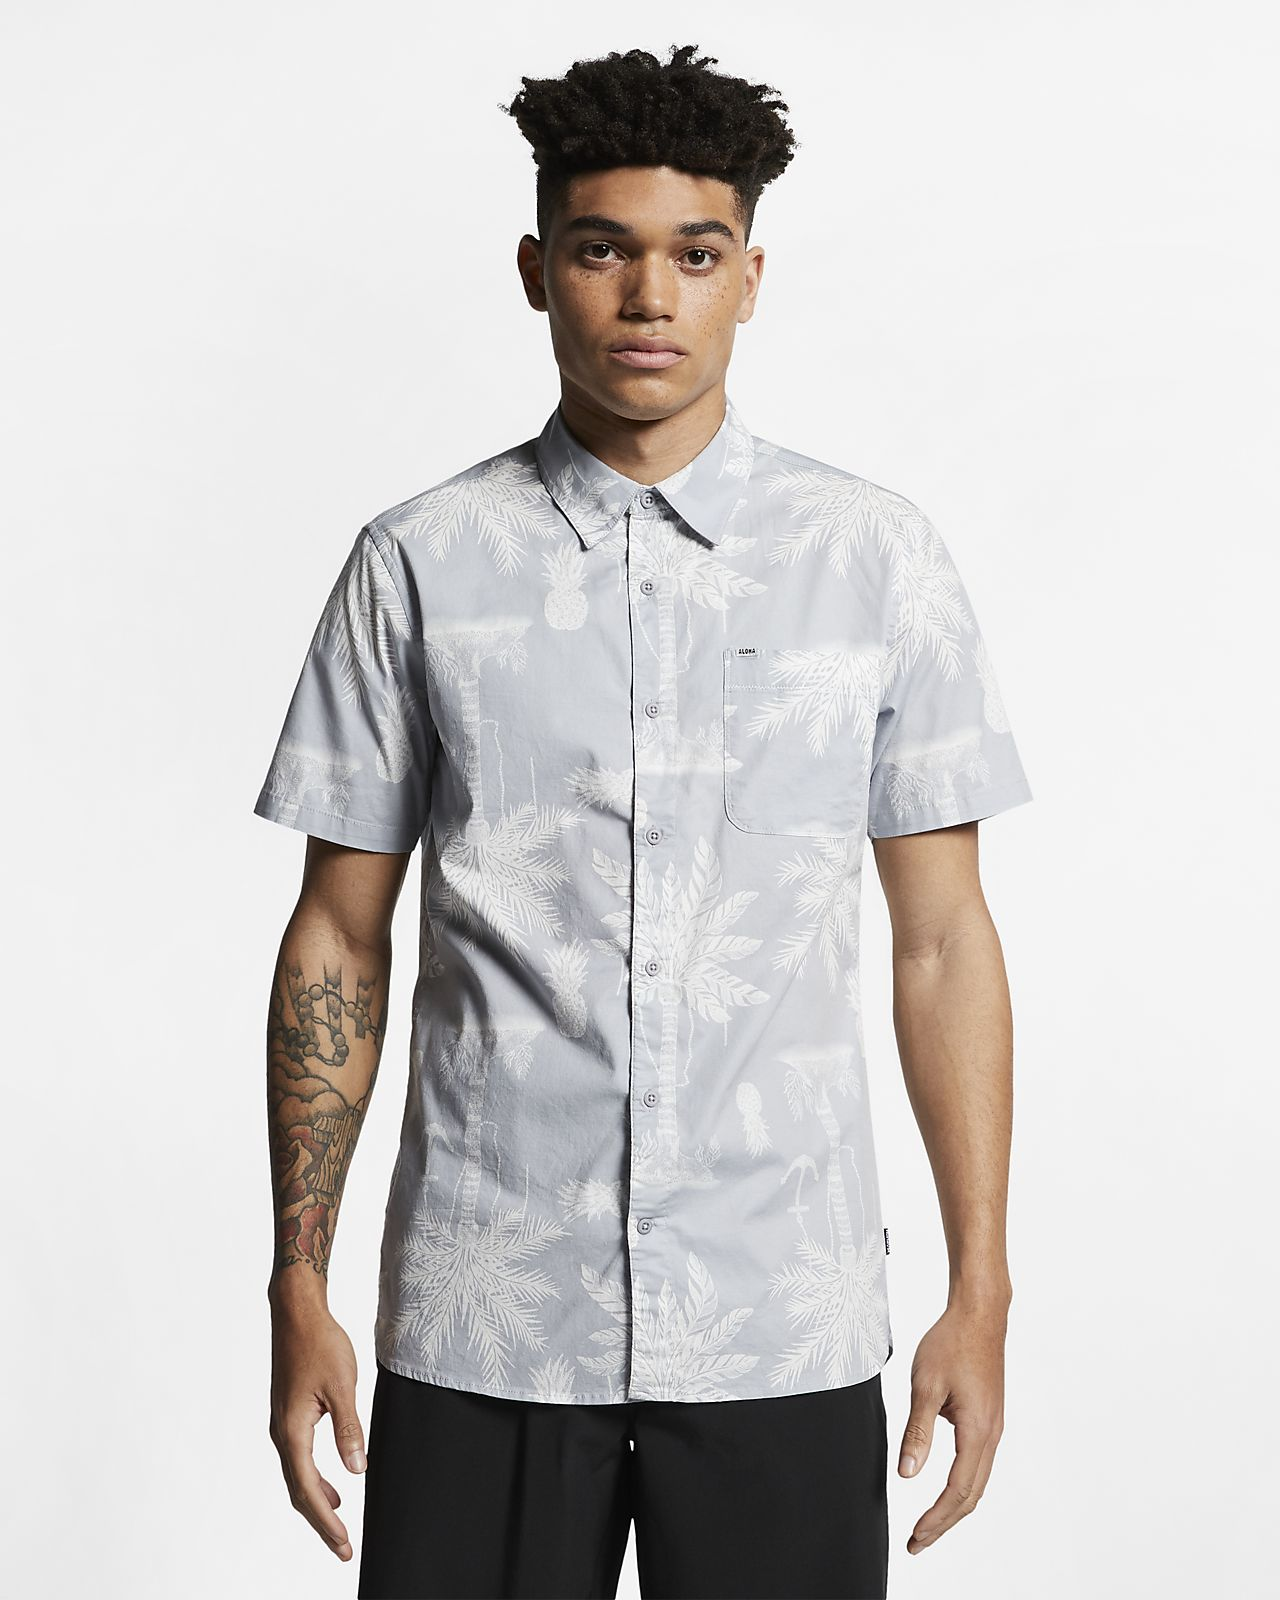 Hurley Asylum Stretch Men's Short-Sleeve Shirt